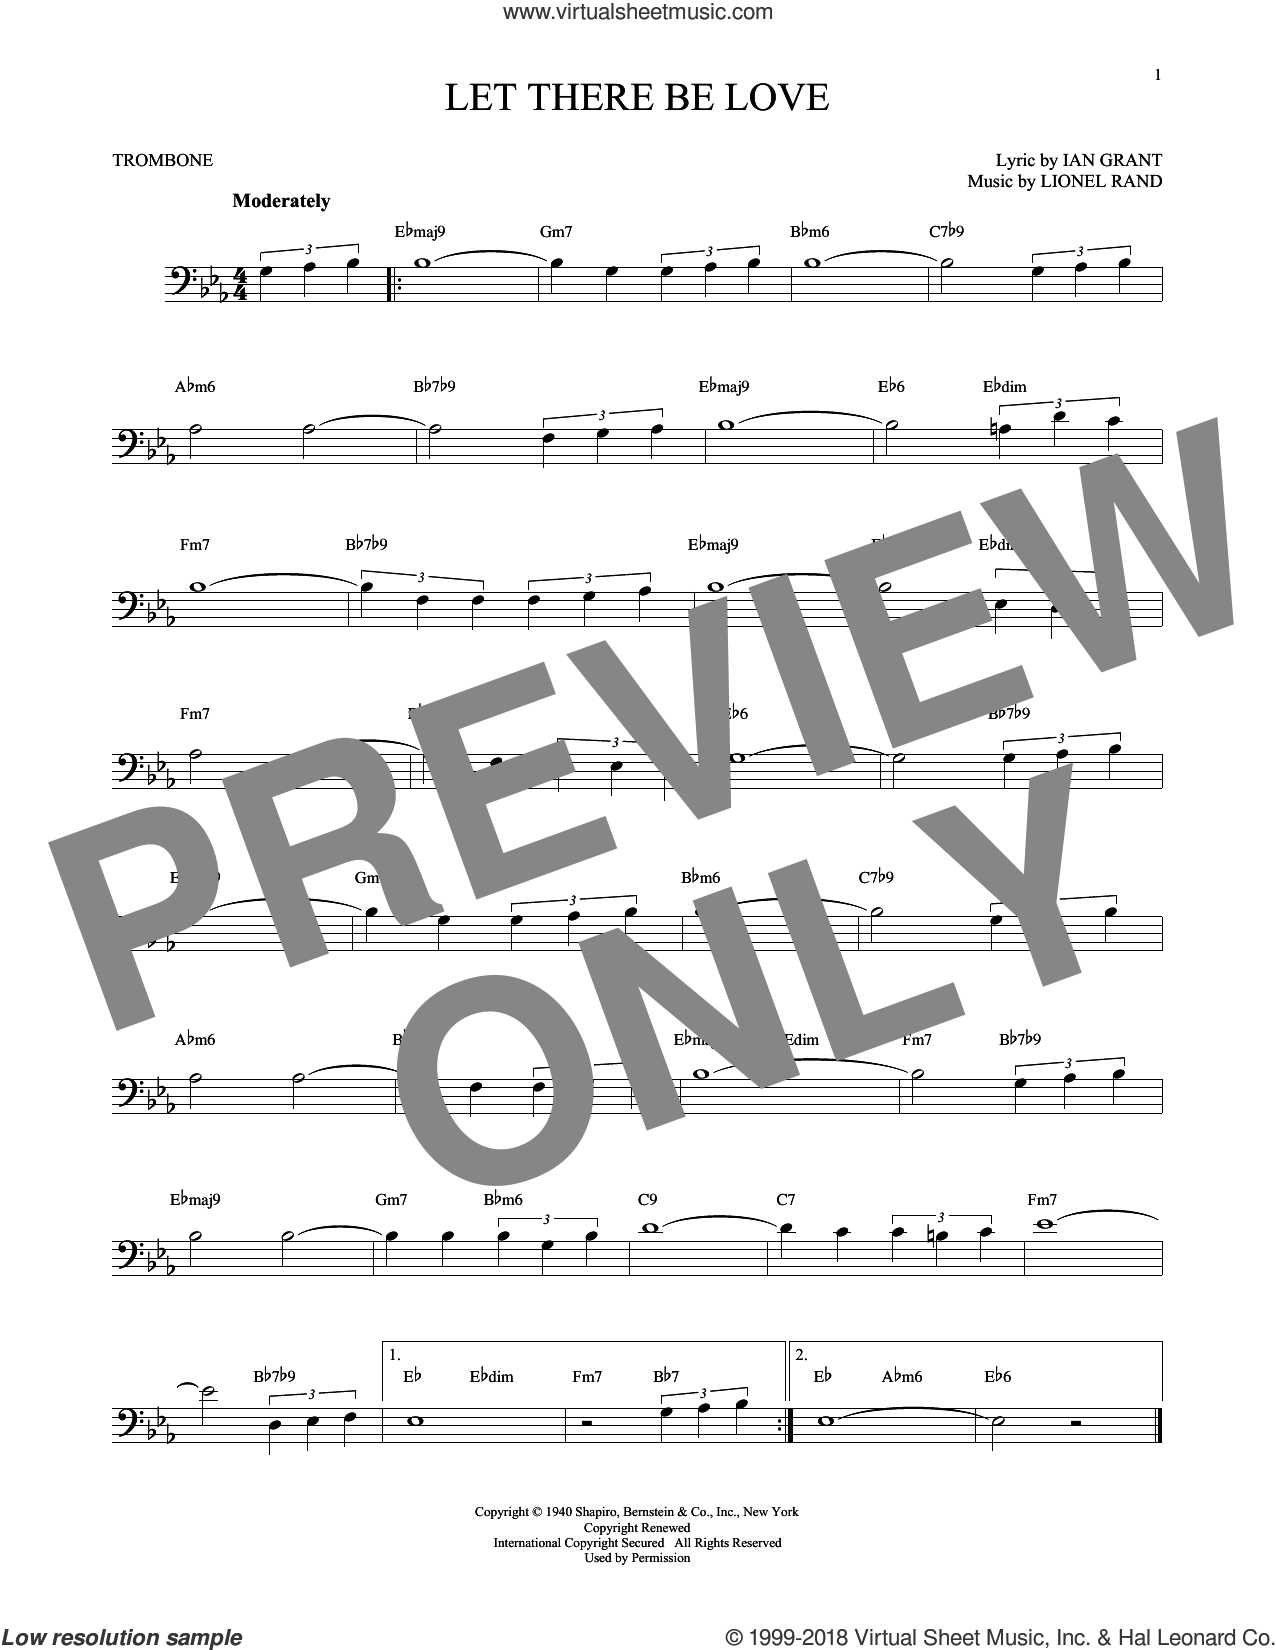 Let There Be Love sheet music for trombone solo by Ian Grant and Lionel Rand. Score Image Preview.